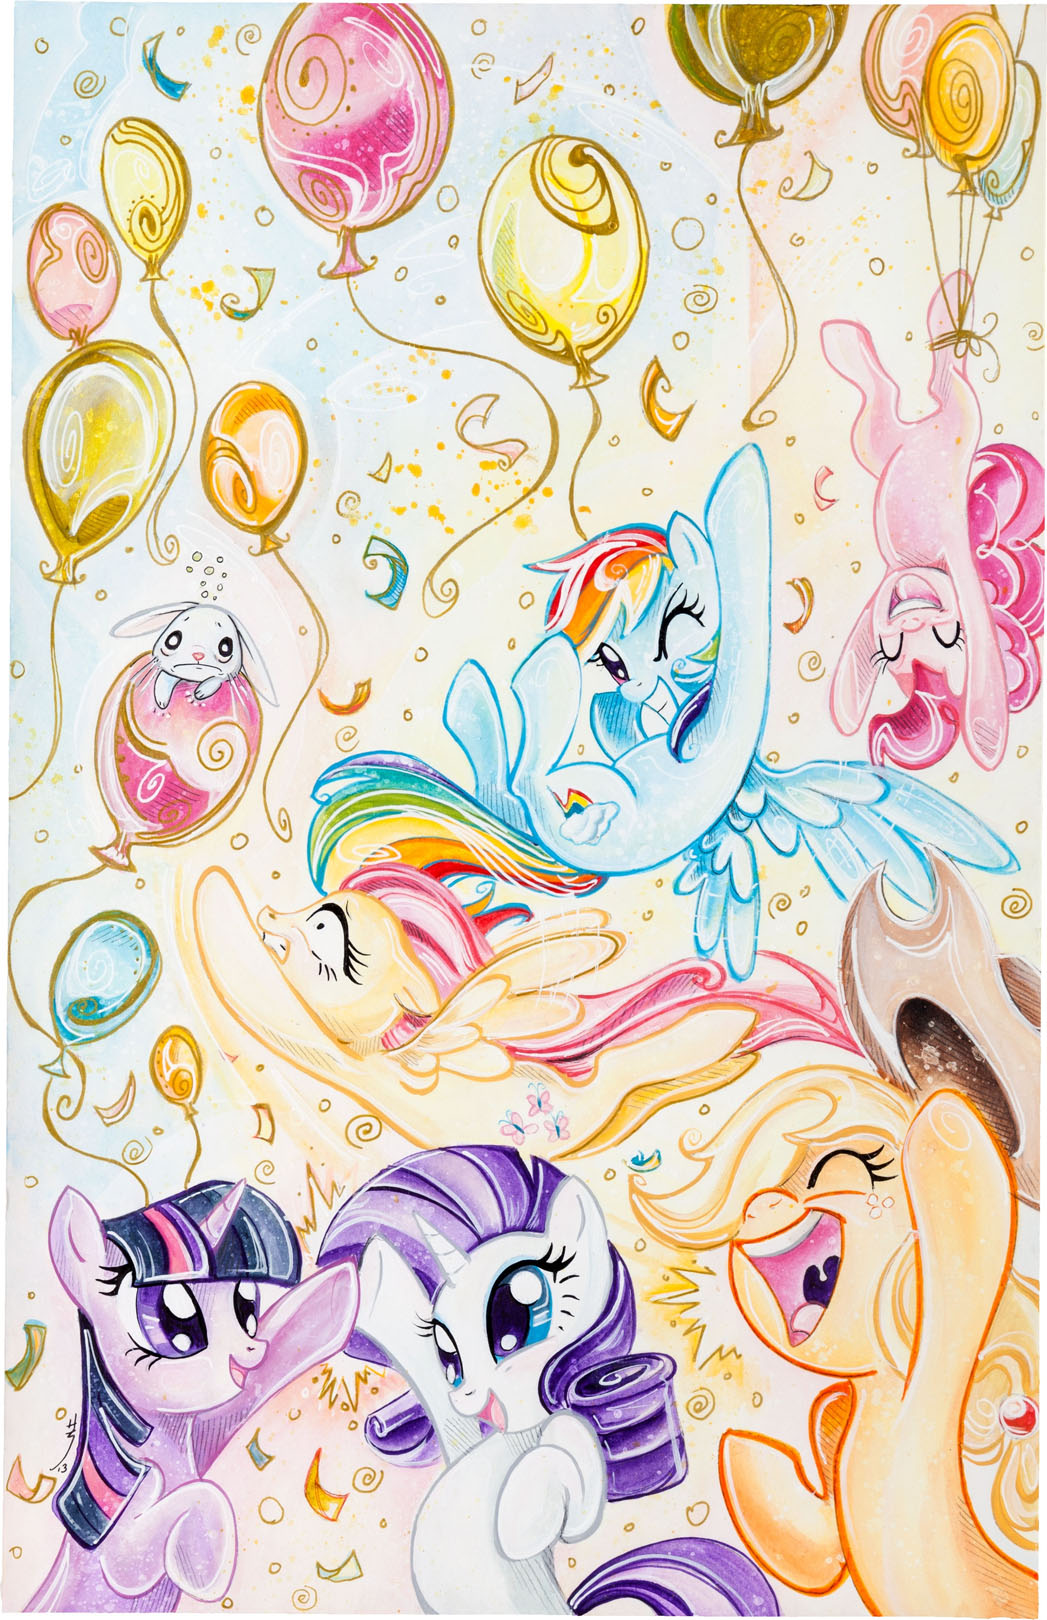 idw hasbro team for 'my little pony' charity auction